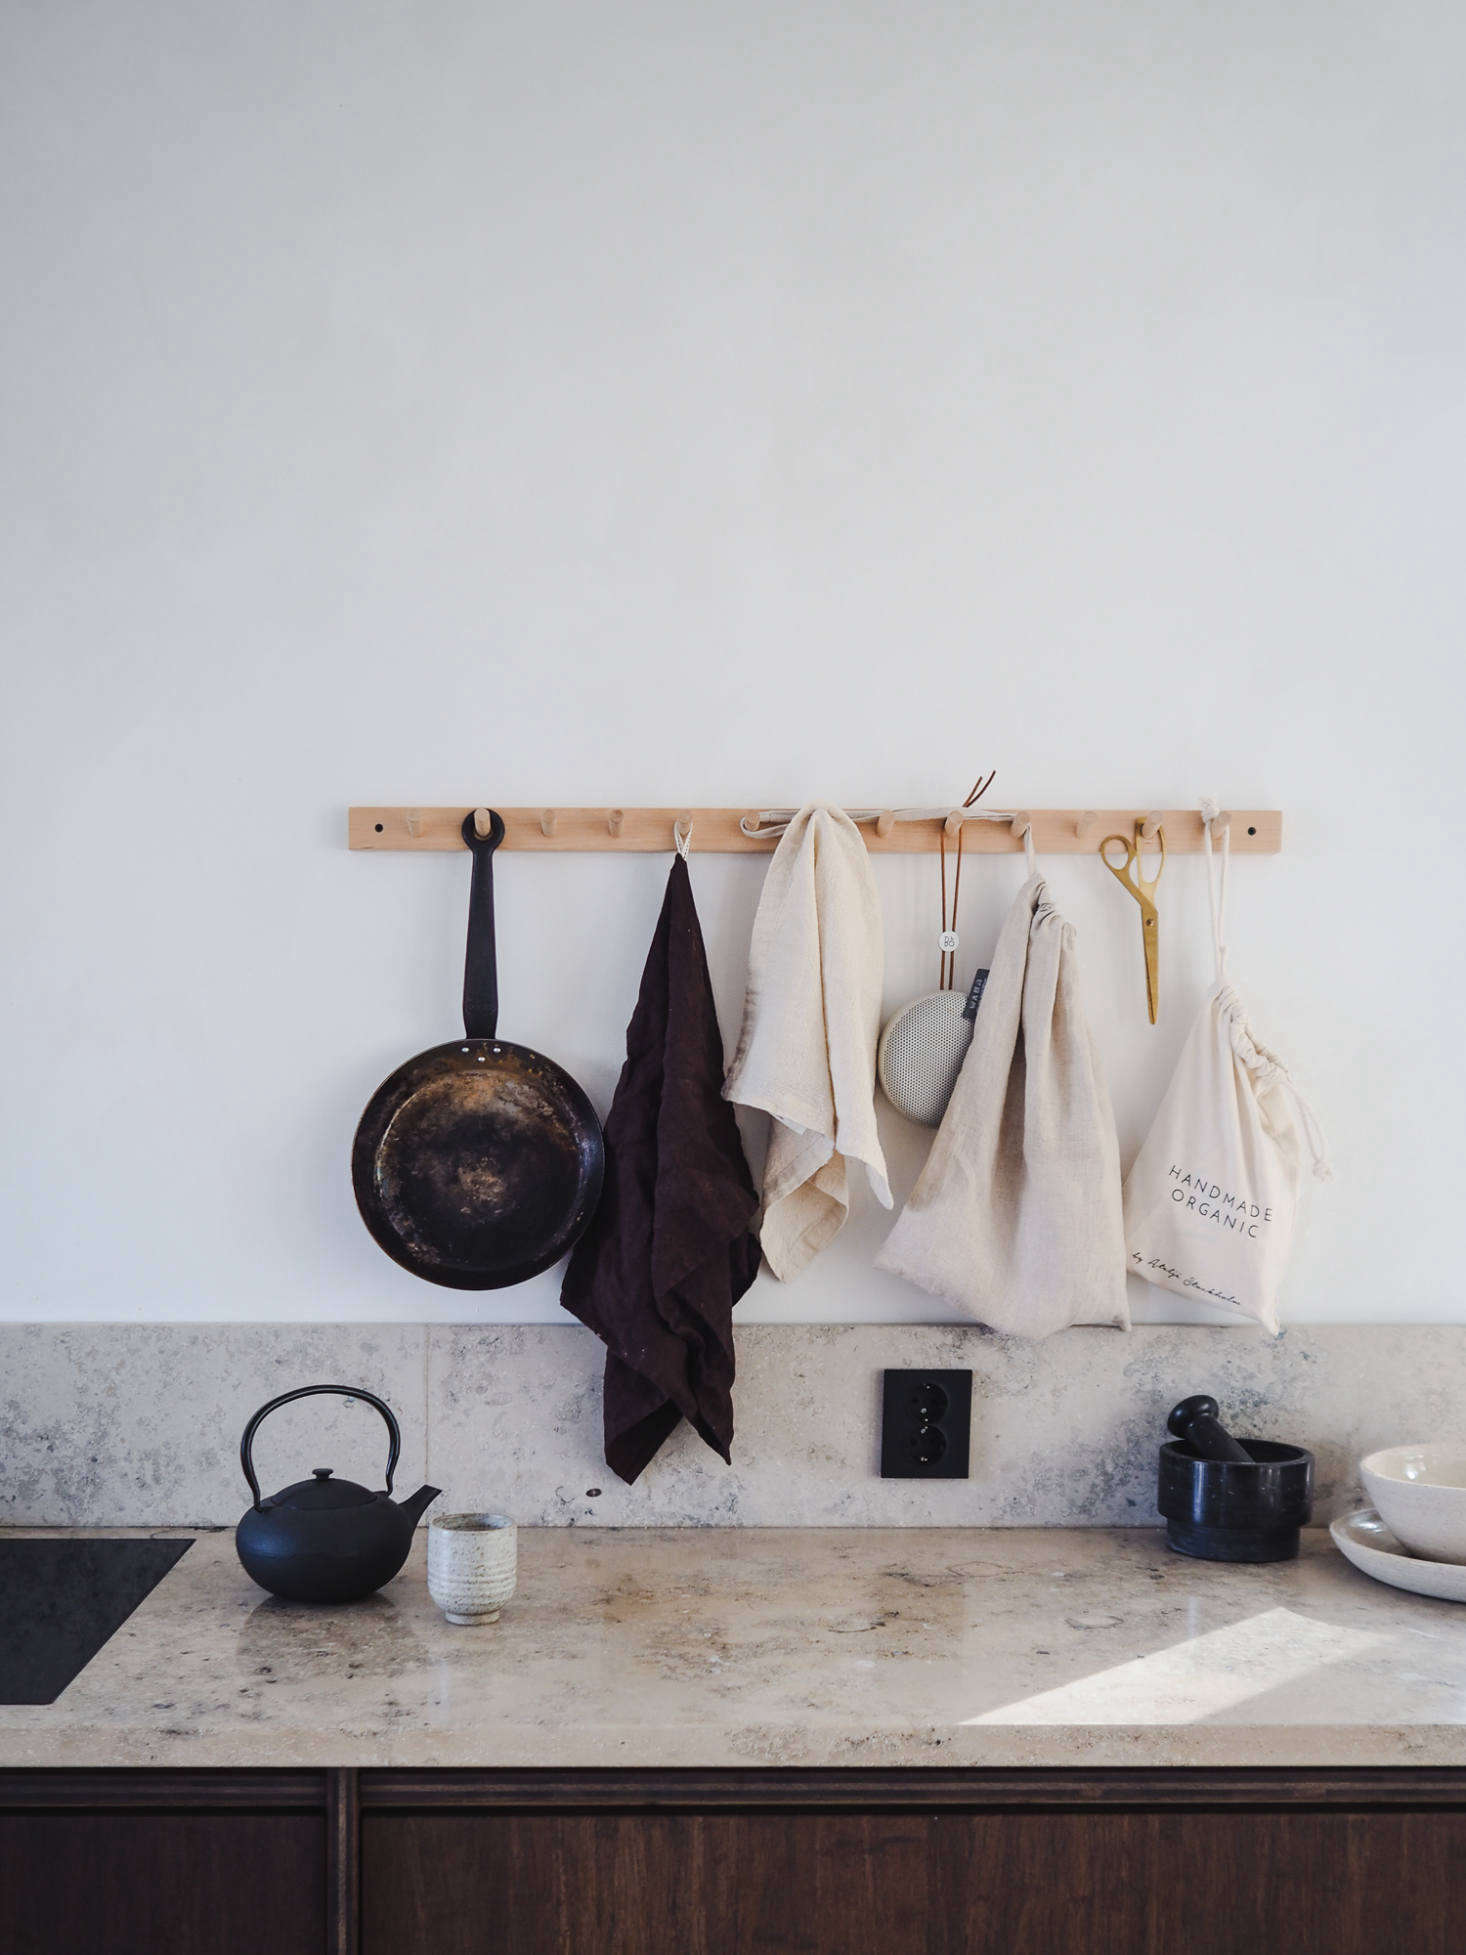 A Birch Hook Rackkeeps crucial kitchen tools off the counter. Discover more of the many uses for peg rails in our book Remodelista: The Organized Home, and for sources see Object Lessons: The Shaker Peg Rail.